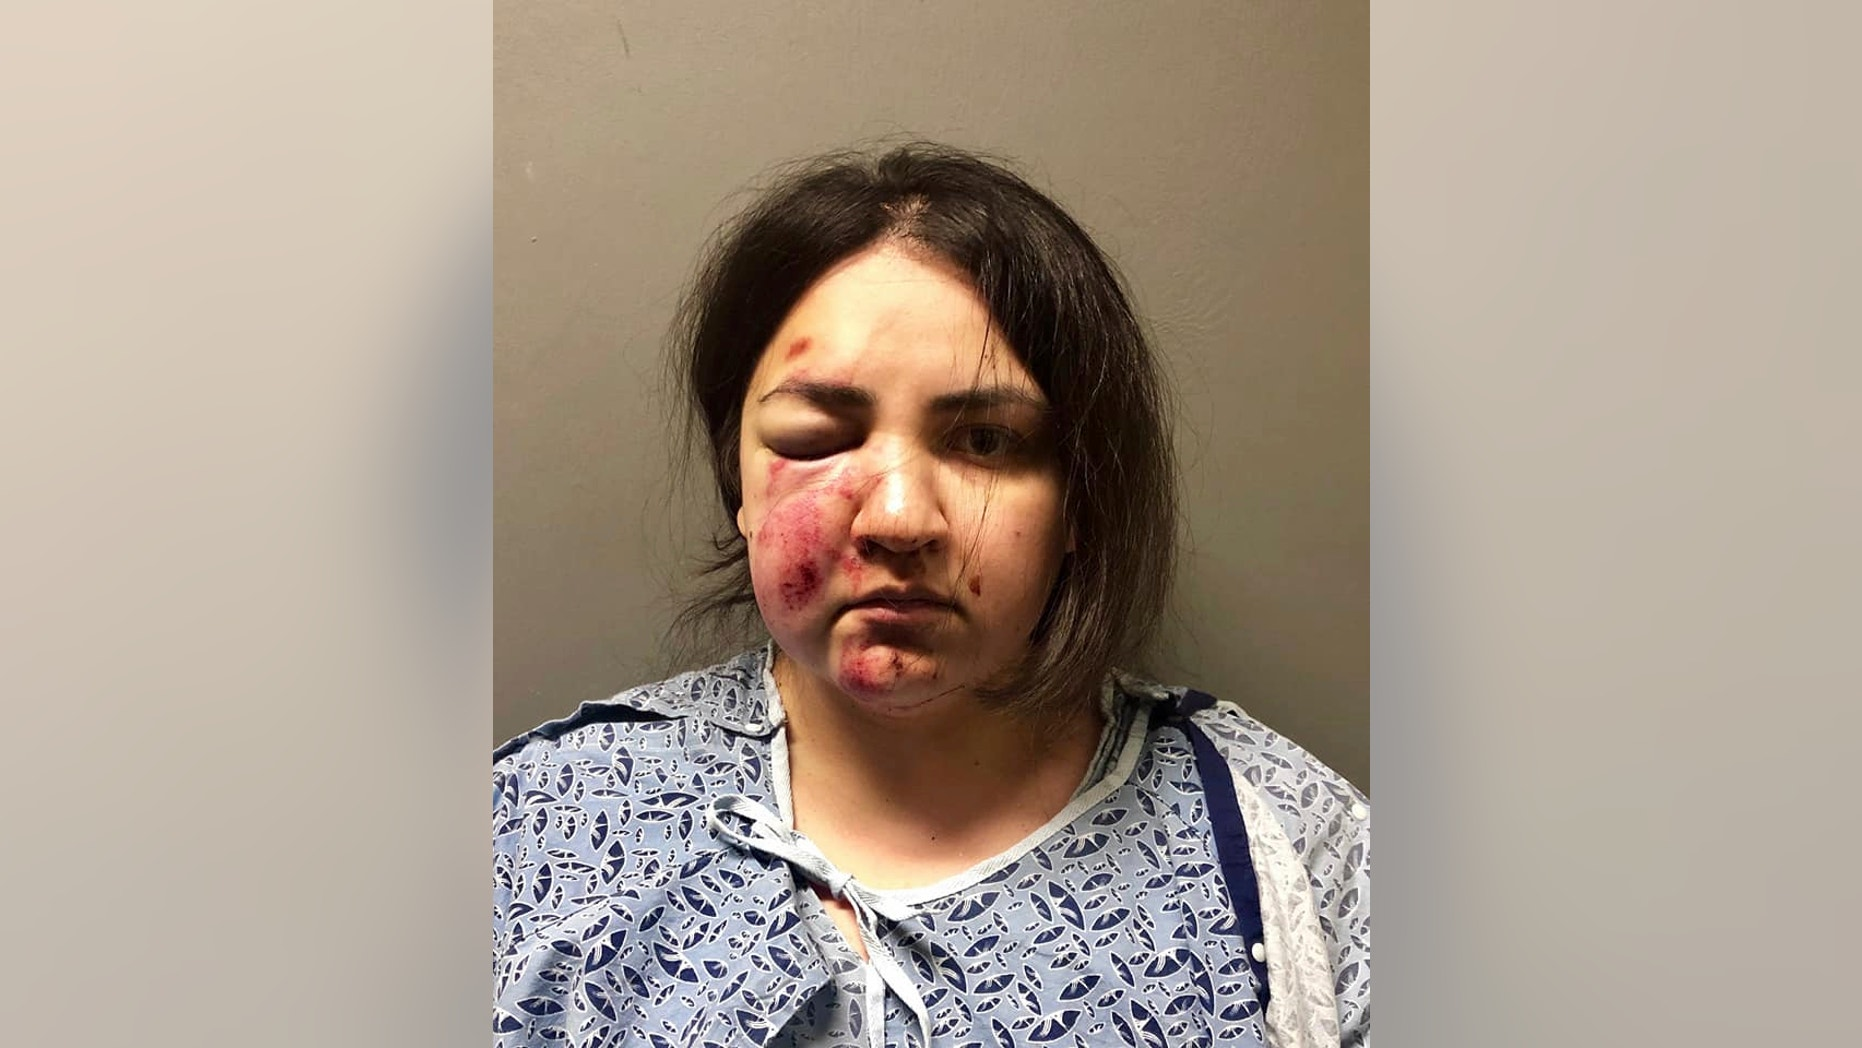 This undated photo provided by theUpland Police Department shows Tierra Ortega who has been booked for investigation of homicide, attempted homicide and child abuse resulting in death. The Southern California mother has been jailed in the death of her infant daughter and injuries suffered by her young son when he was allegedly dropped from a second-floor landing at her apartment building. (Upland Police Department via AP)